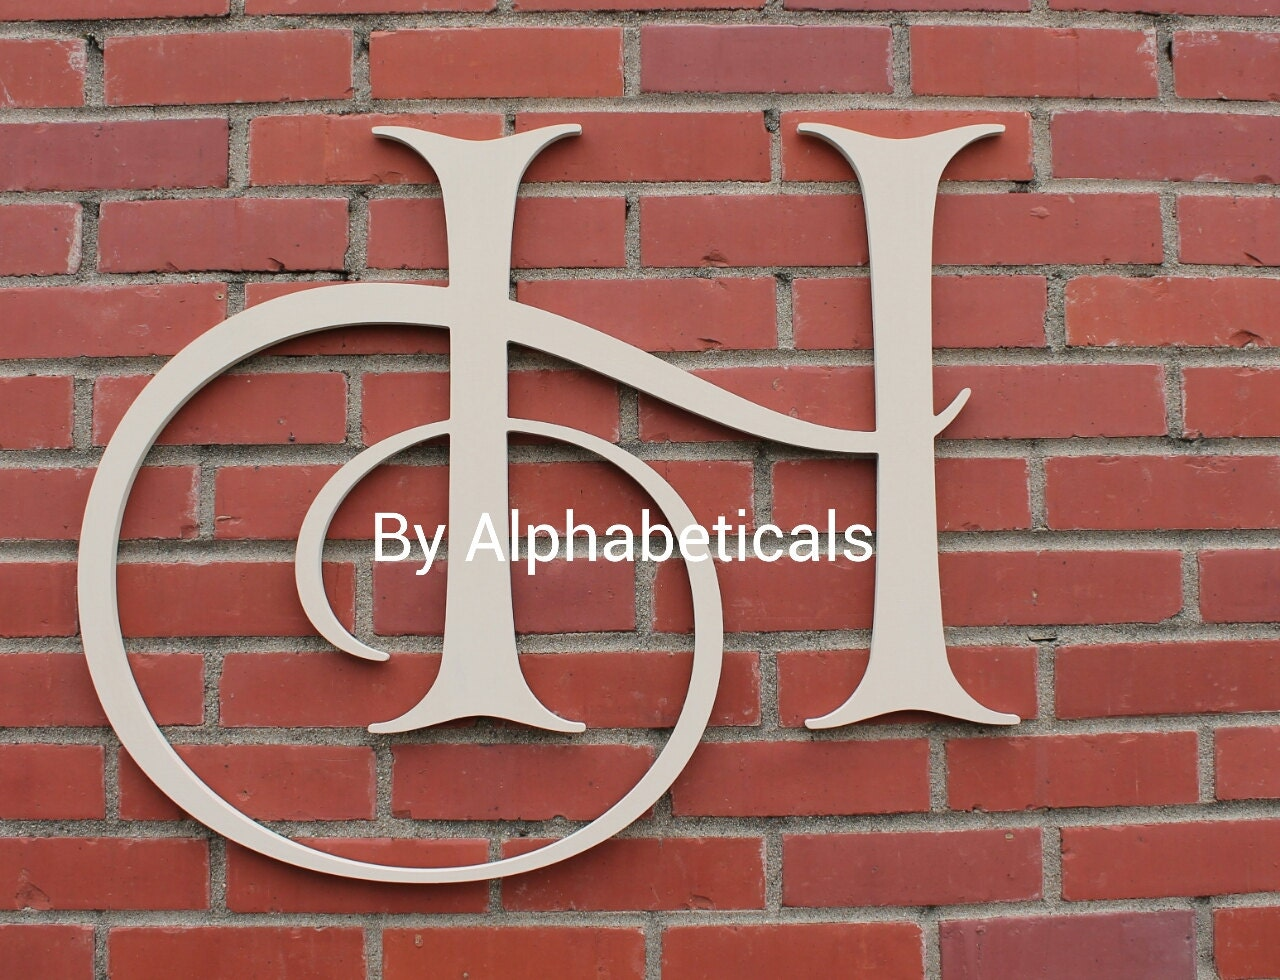 H Wall Decor Wooden Letters Decorative Wall By Alphabeticals